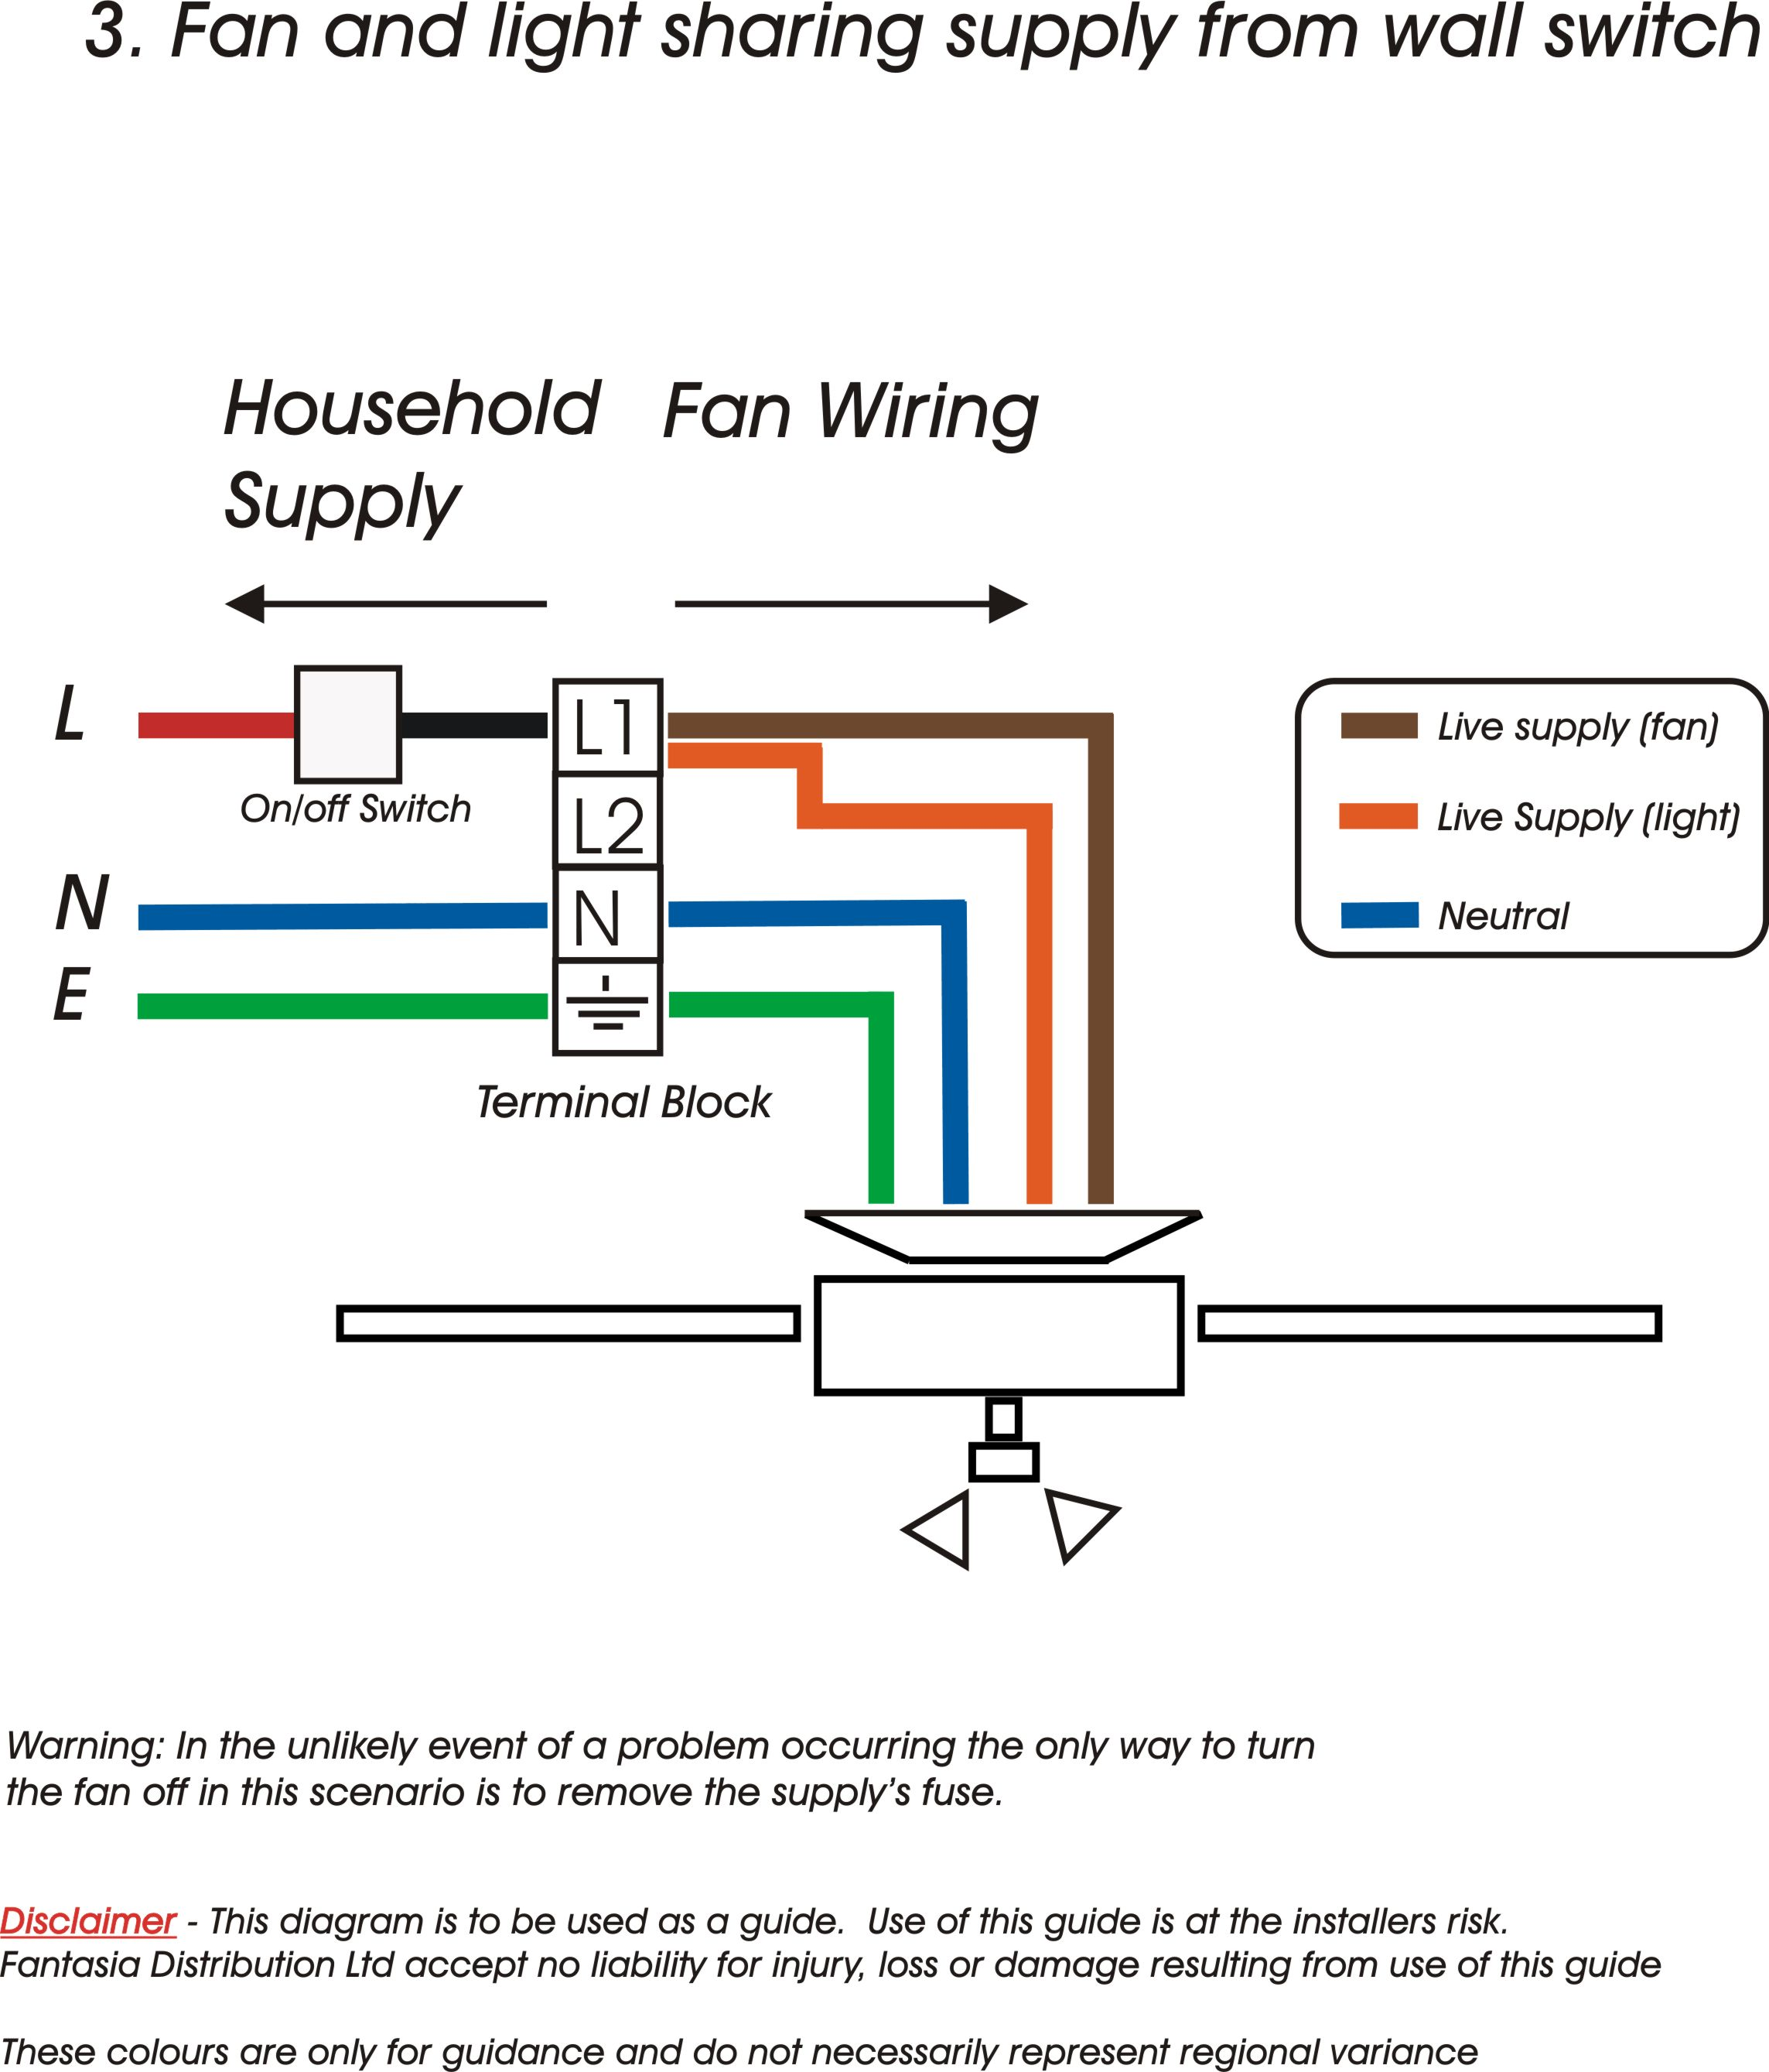 LC_9476] Speed Fan Switch Wiring Diagram Wiring Diagram Ceiling Fans With Wiring  DiagramOver Marki Xolia Mohammedshrine Librar Wiring 101